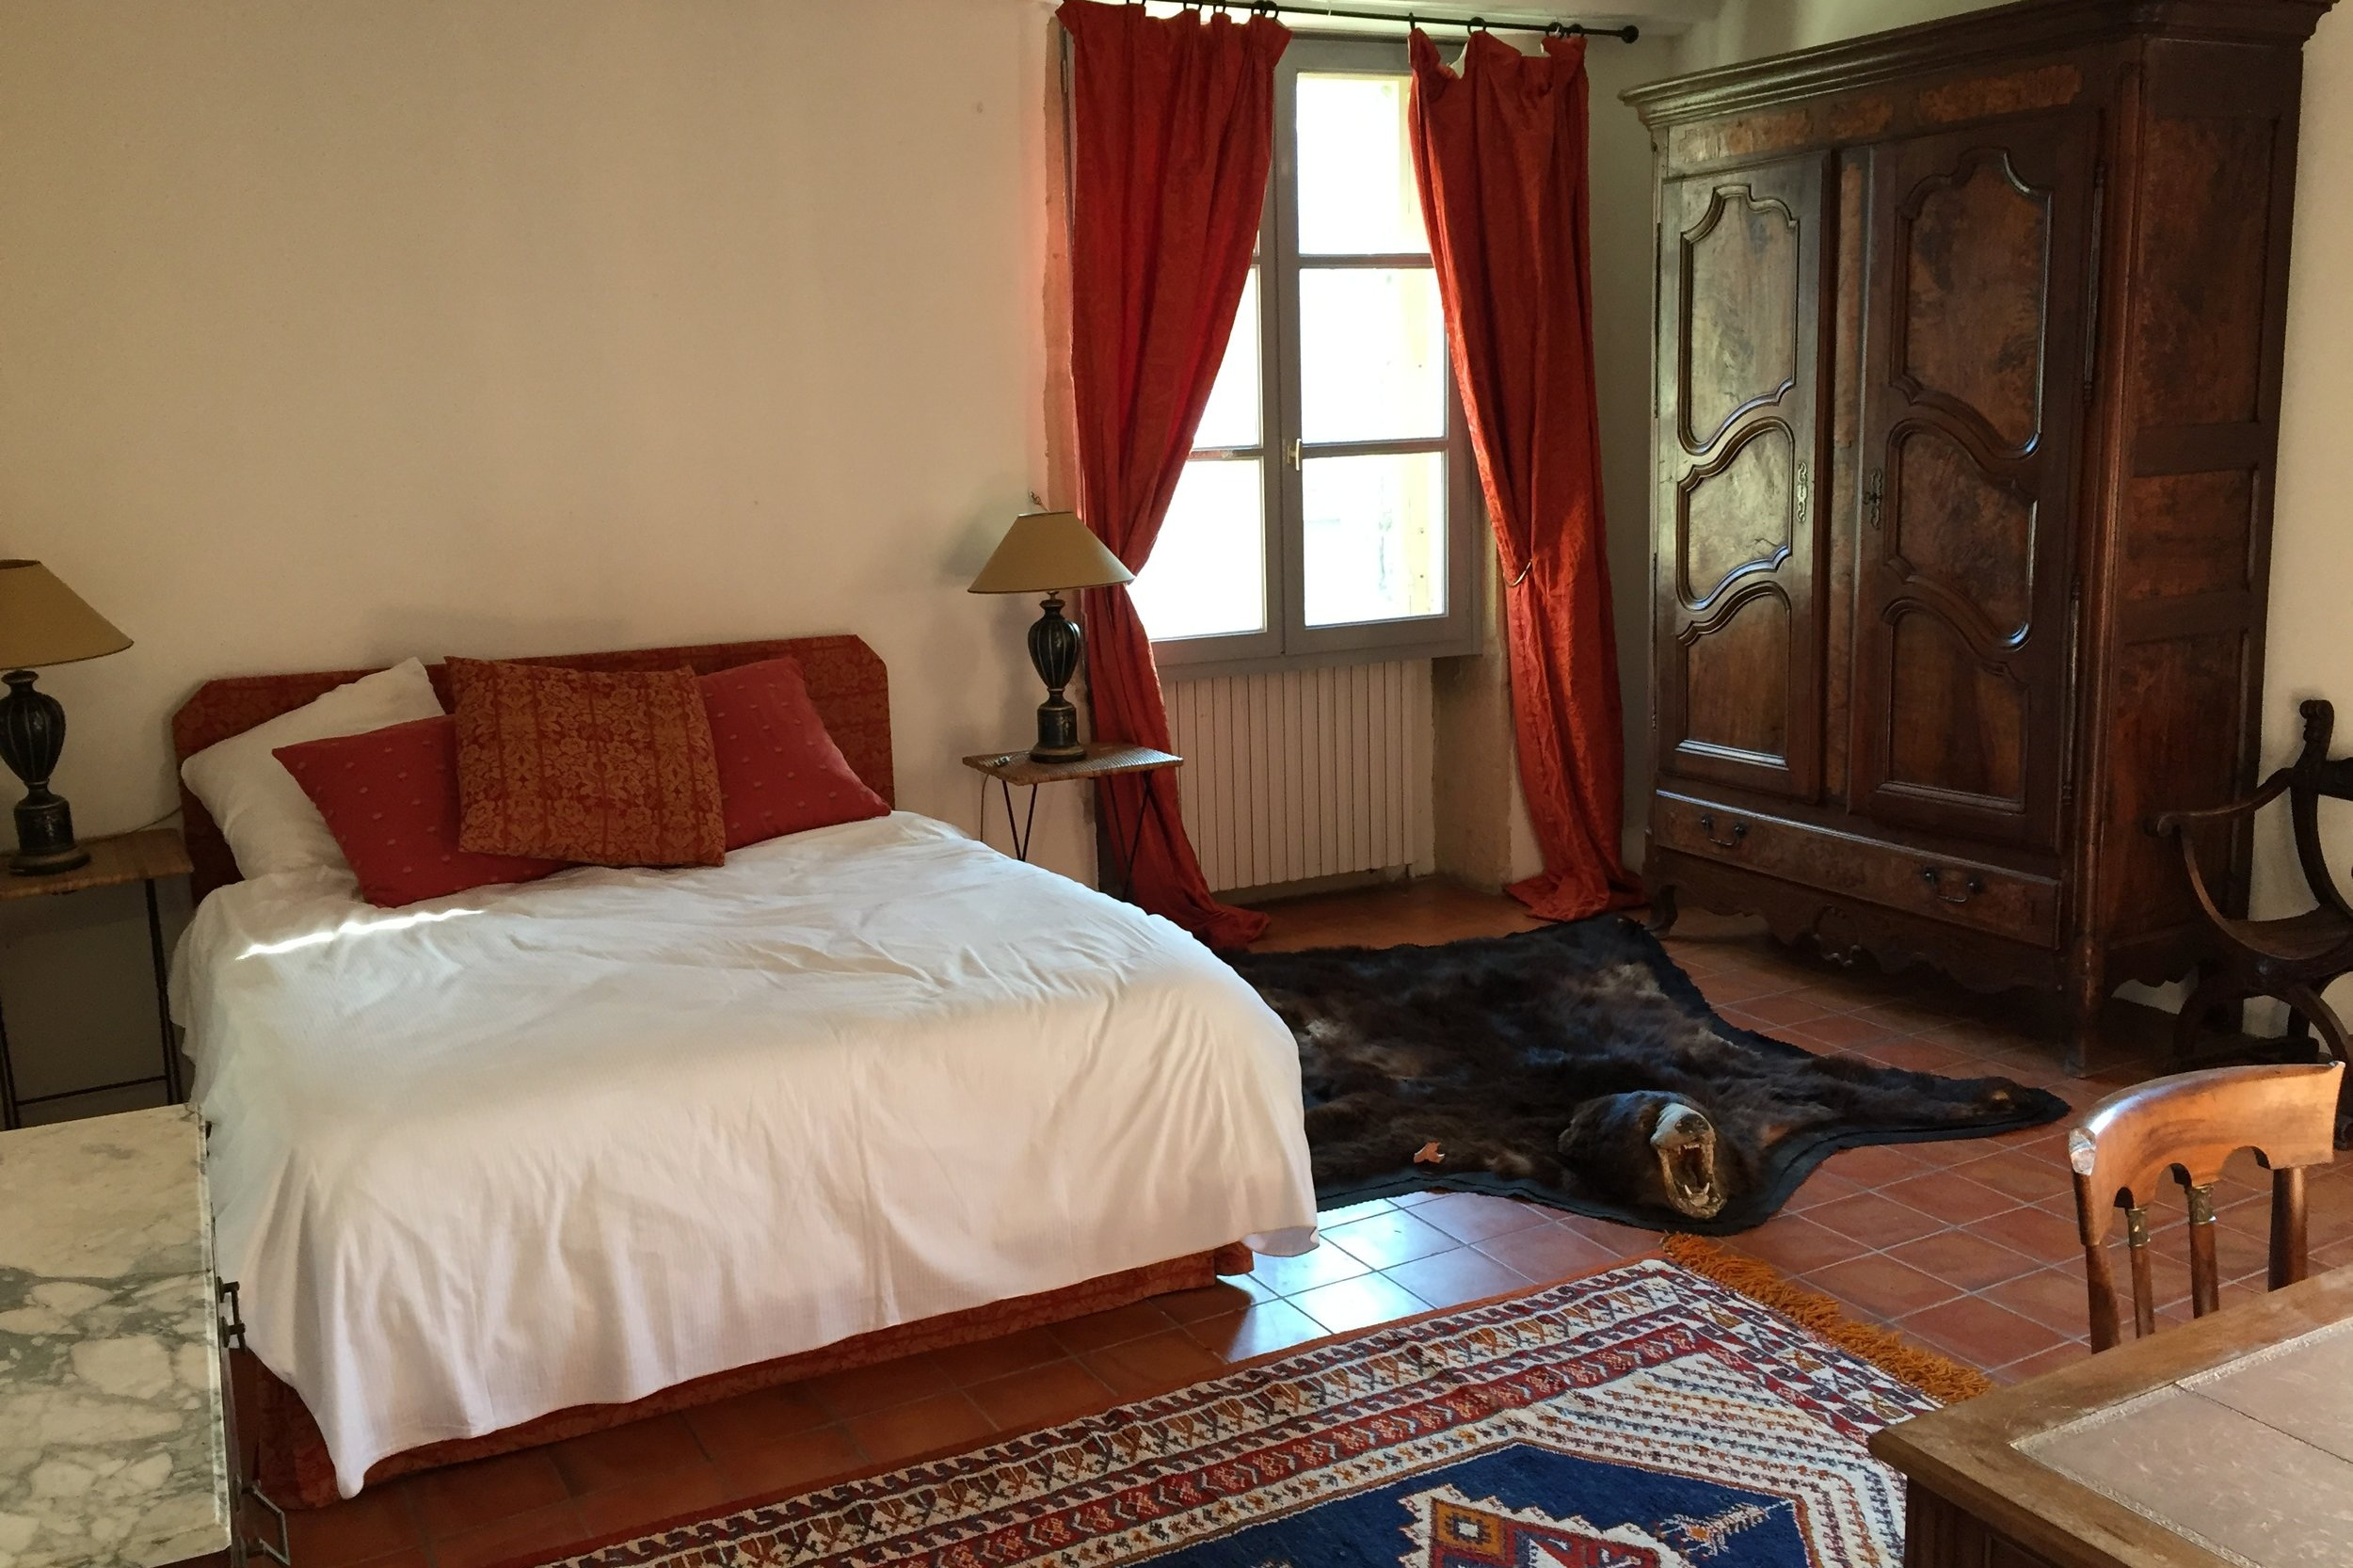 Private Dbl Room - There are 4 private double rooms in the main house. For Single or 2 person usePrice 75€ per night for one person or 80€ for two